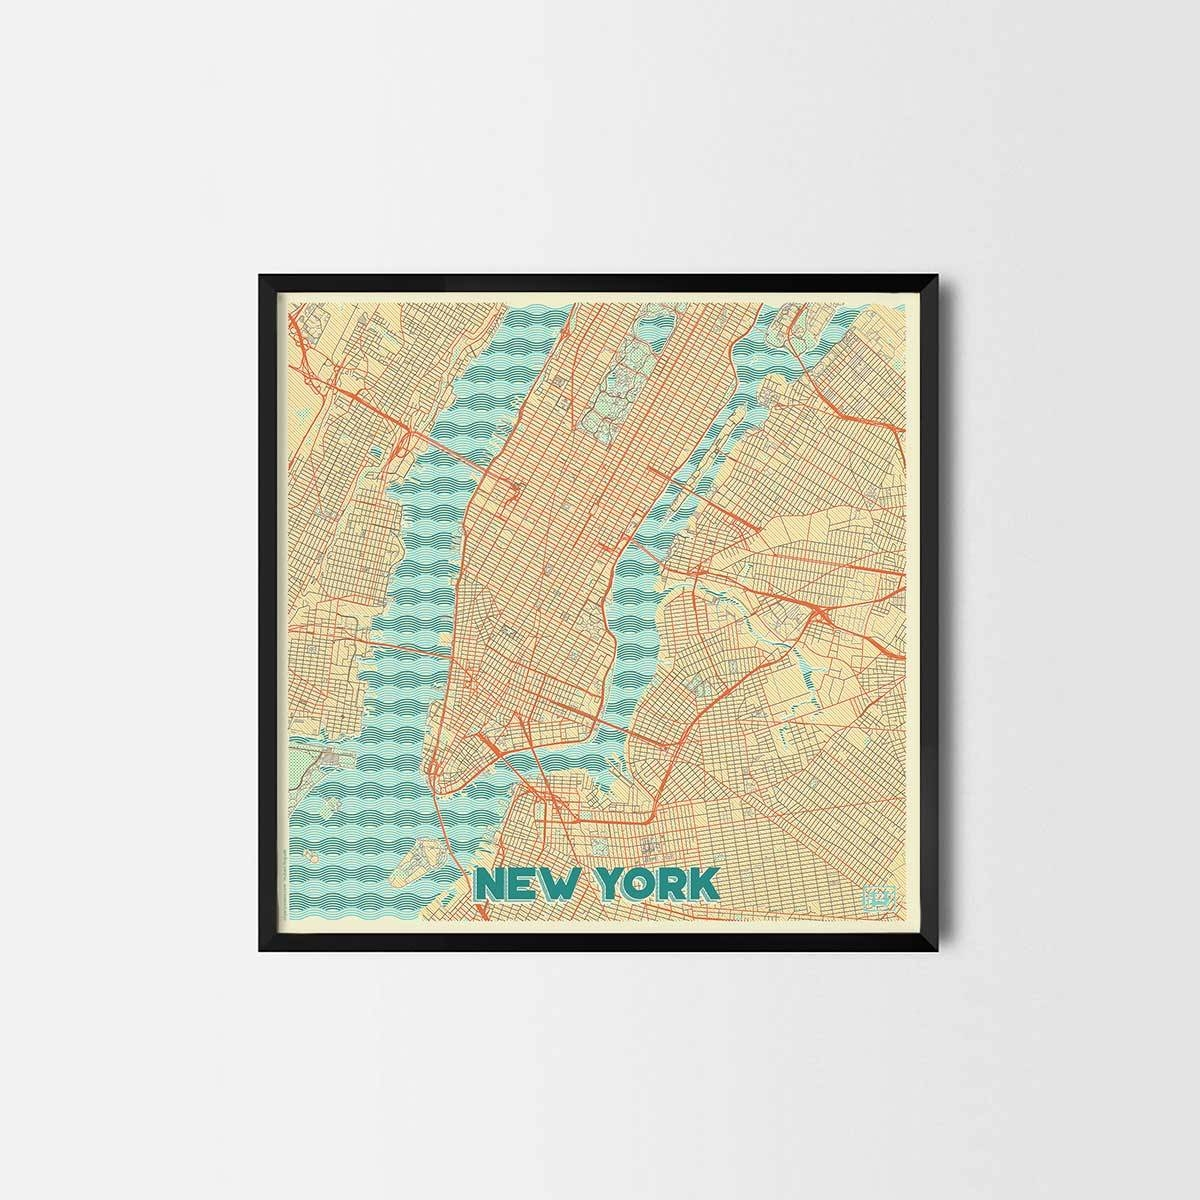 City Art Posters | Map Posters And Art Prints – Gifts For City Inside Newest New York City Map Wall Art (View 2 of 20)